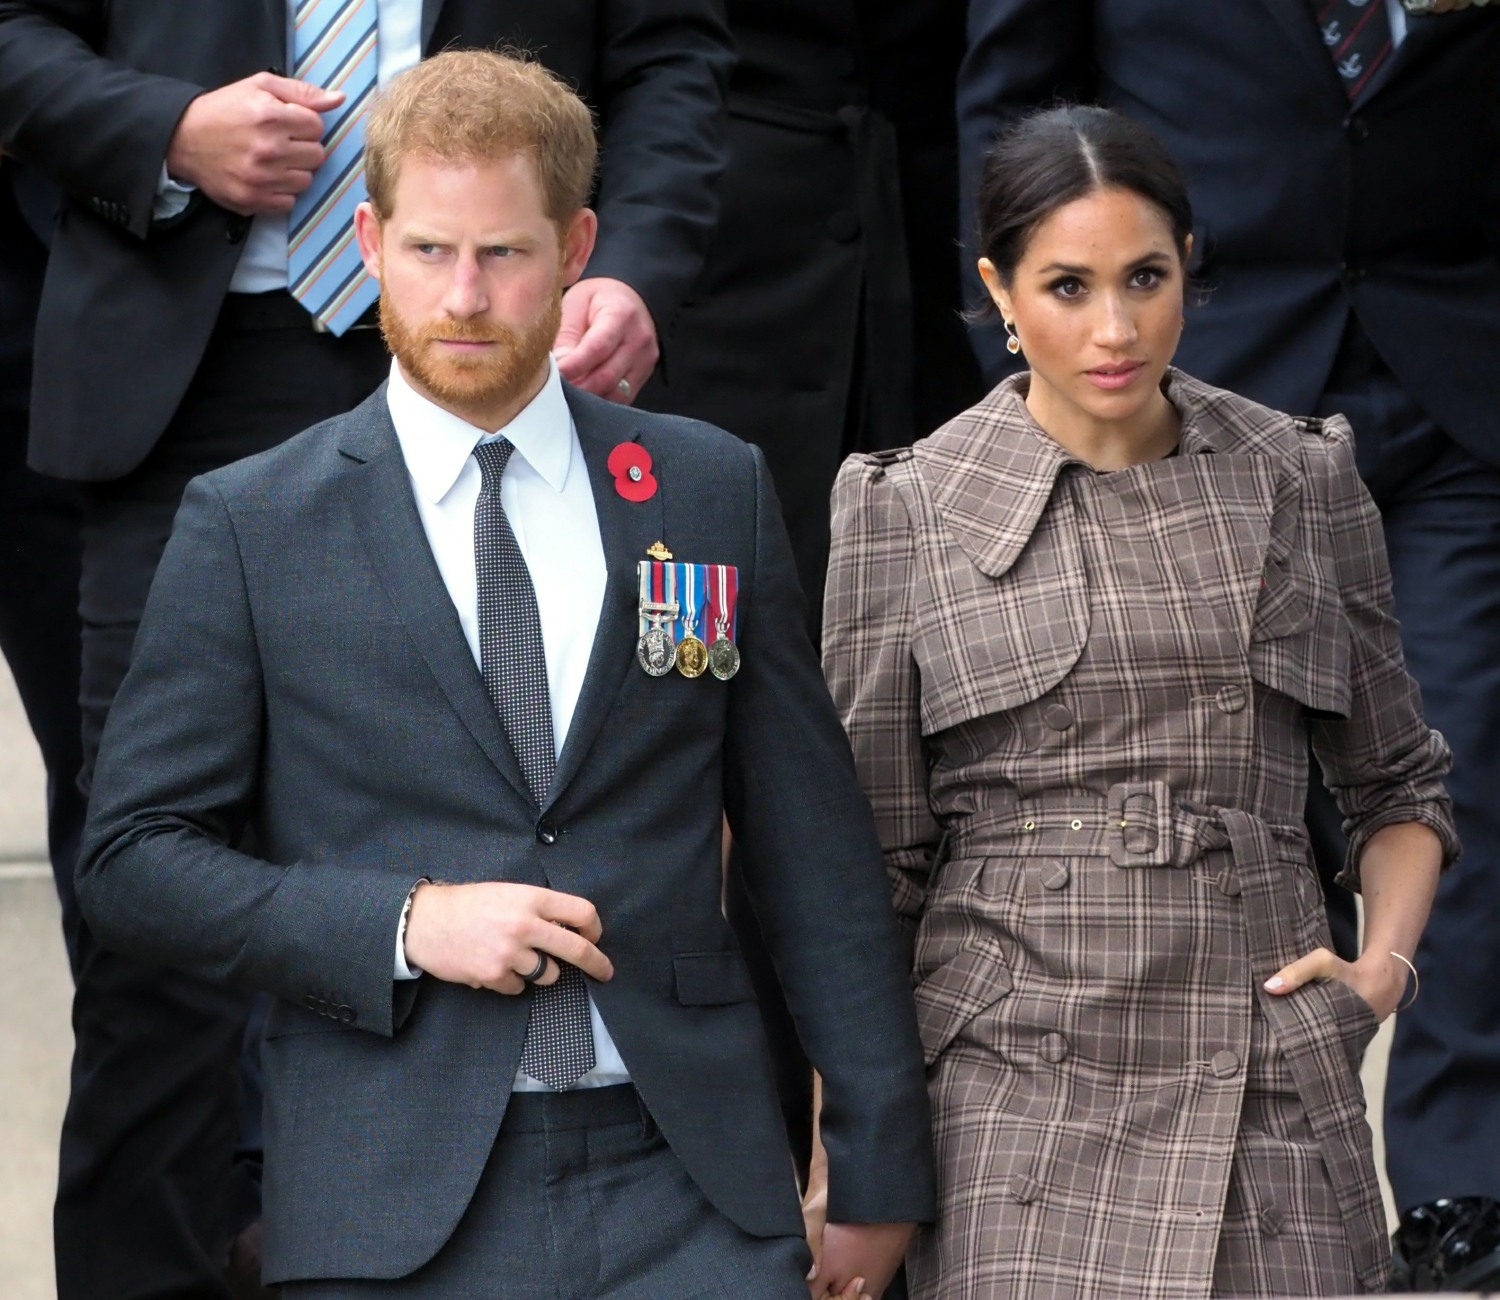 Duke and Duchess os Sussex arrive in New Zealand!